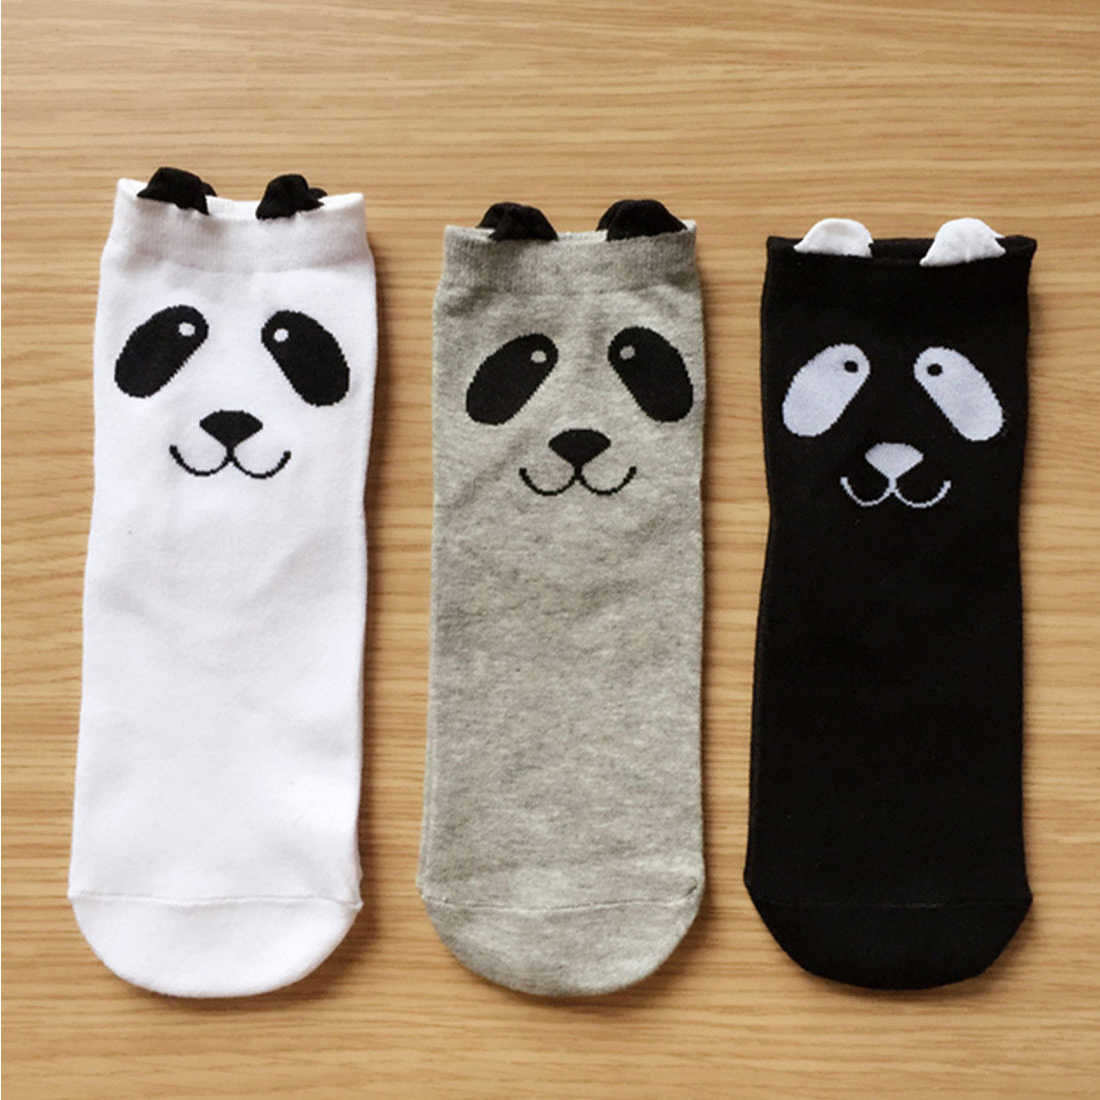 Warm Socks Women All-Match Cotton Panda Cartoon Comfortable Simple Black And White Gray Bar With Casual Female Socks